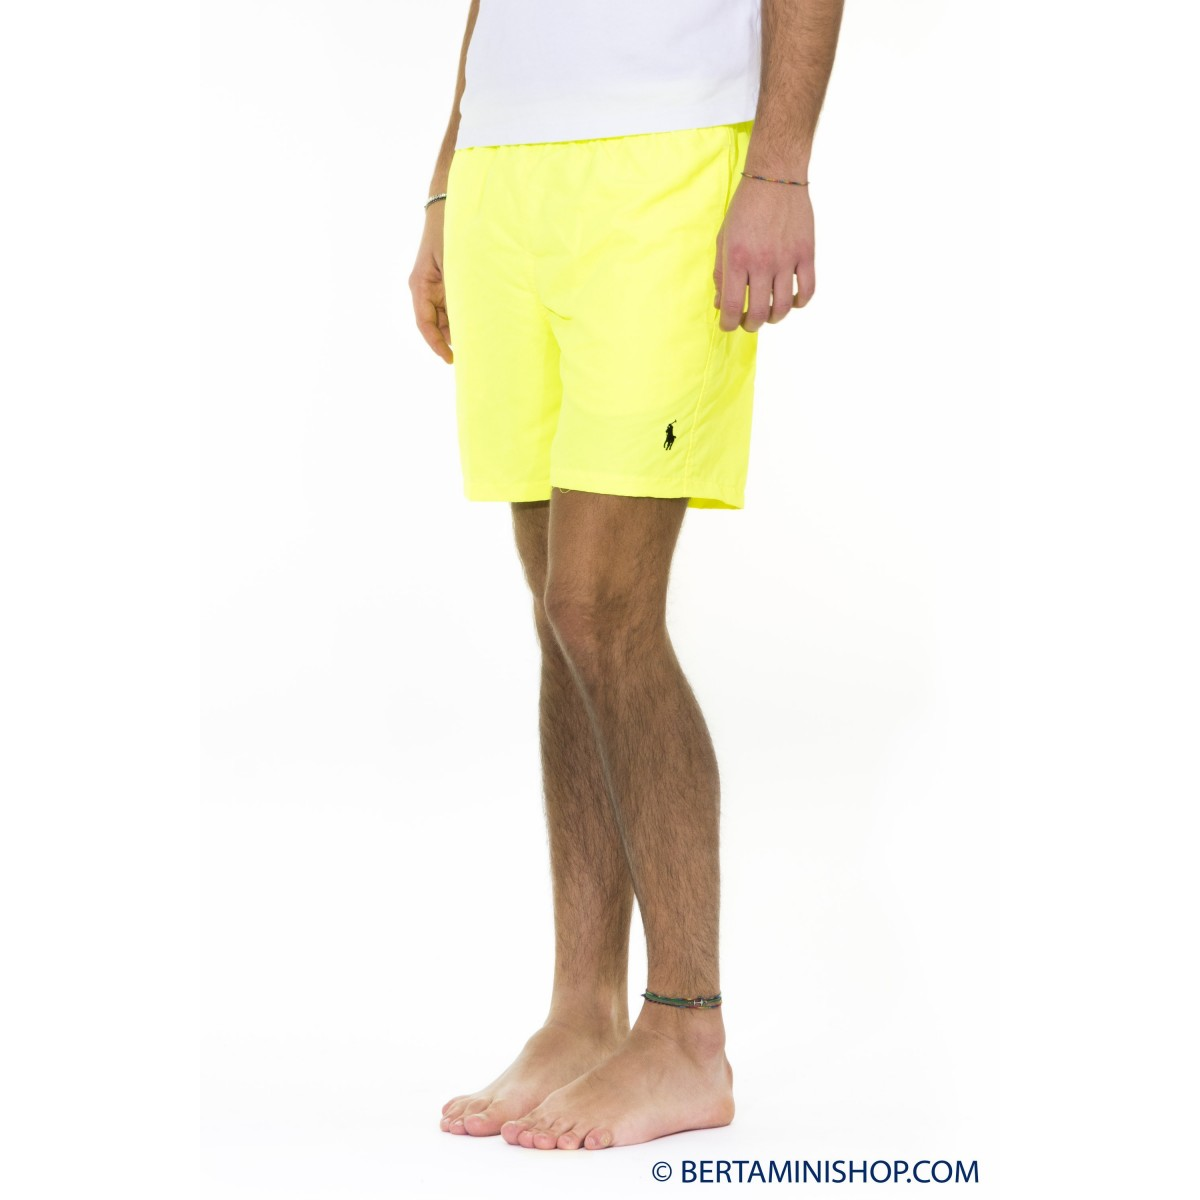 Badehosen Ralph Lauren Manner - A75Aww12Yy501 Short Fluo A7800 - Giallo fluo